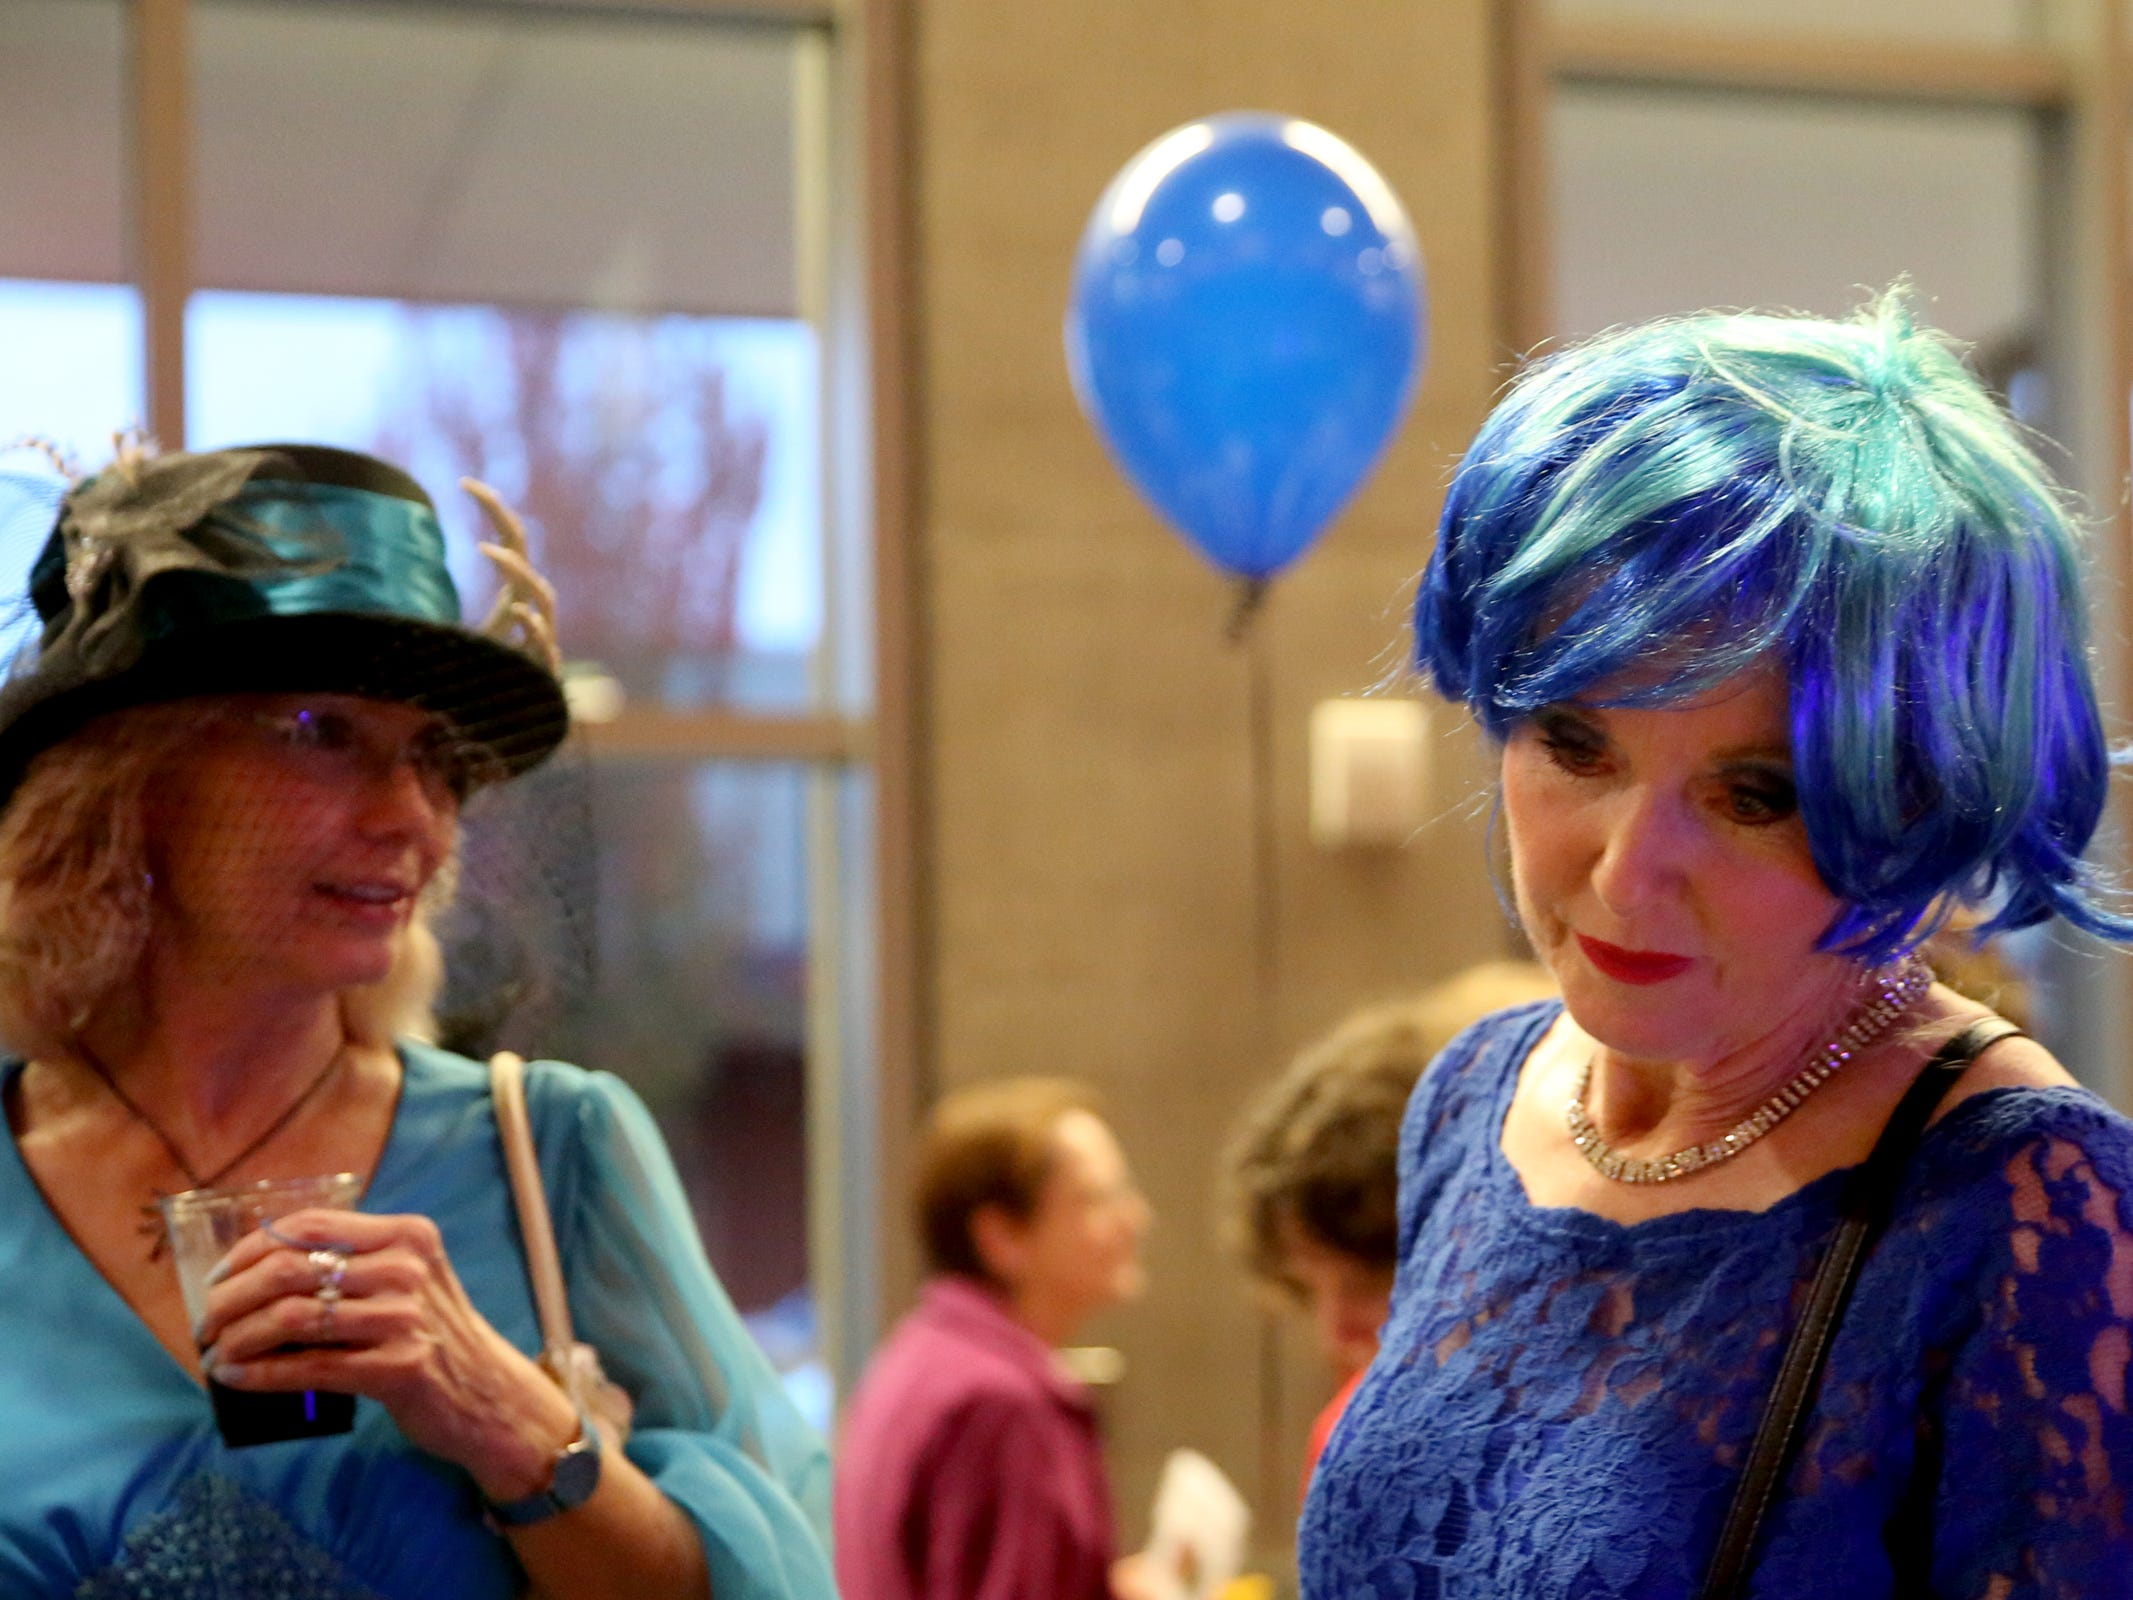 Kathy Bobbio, left, and Laurel Hines, both of Salem, look at items available for auction at Bowser's Boo Bash, a fundraiser for the Willamette Humane Society, at the Salem Convention Center on Saturday, Oct. 27, 2018.